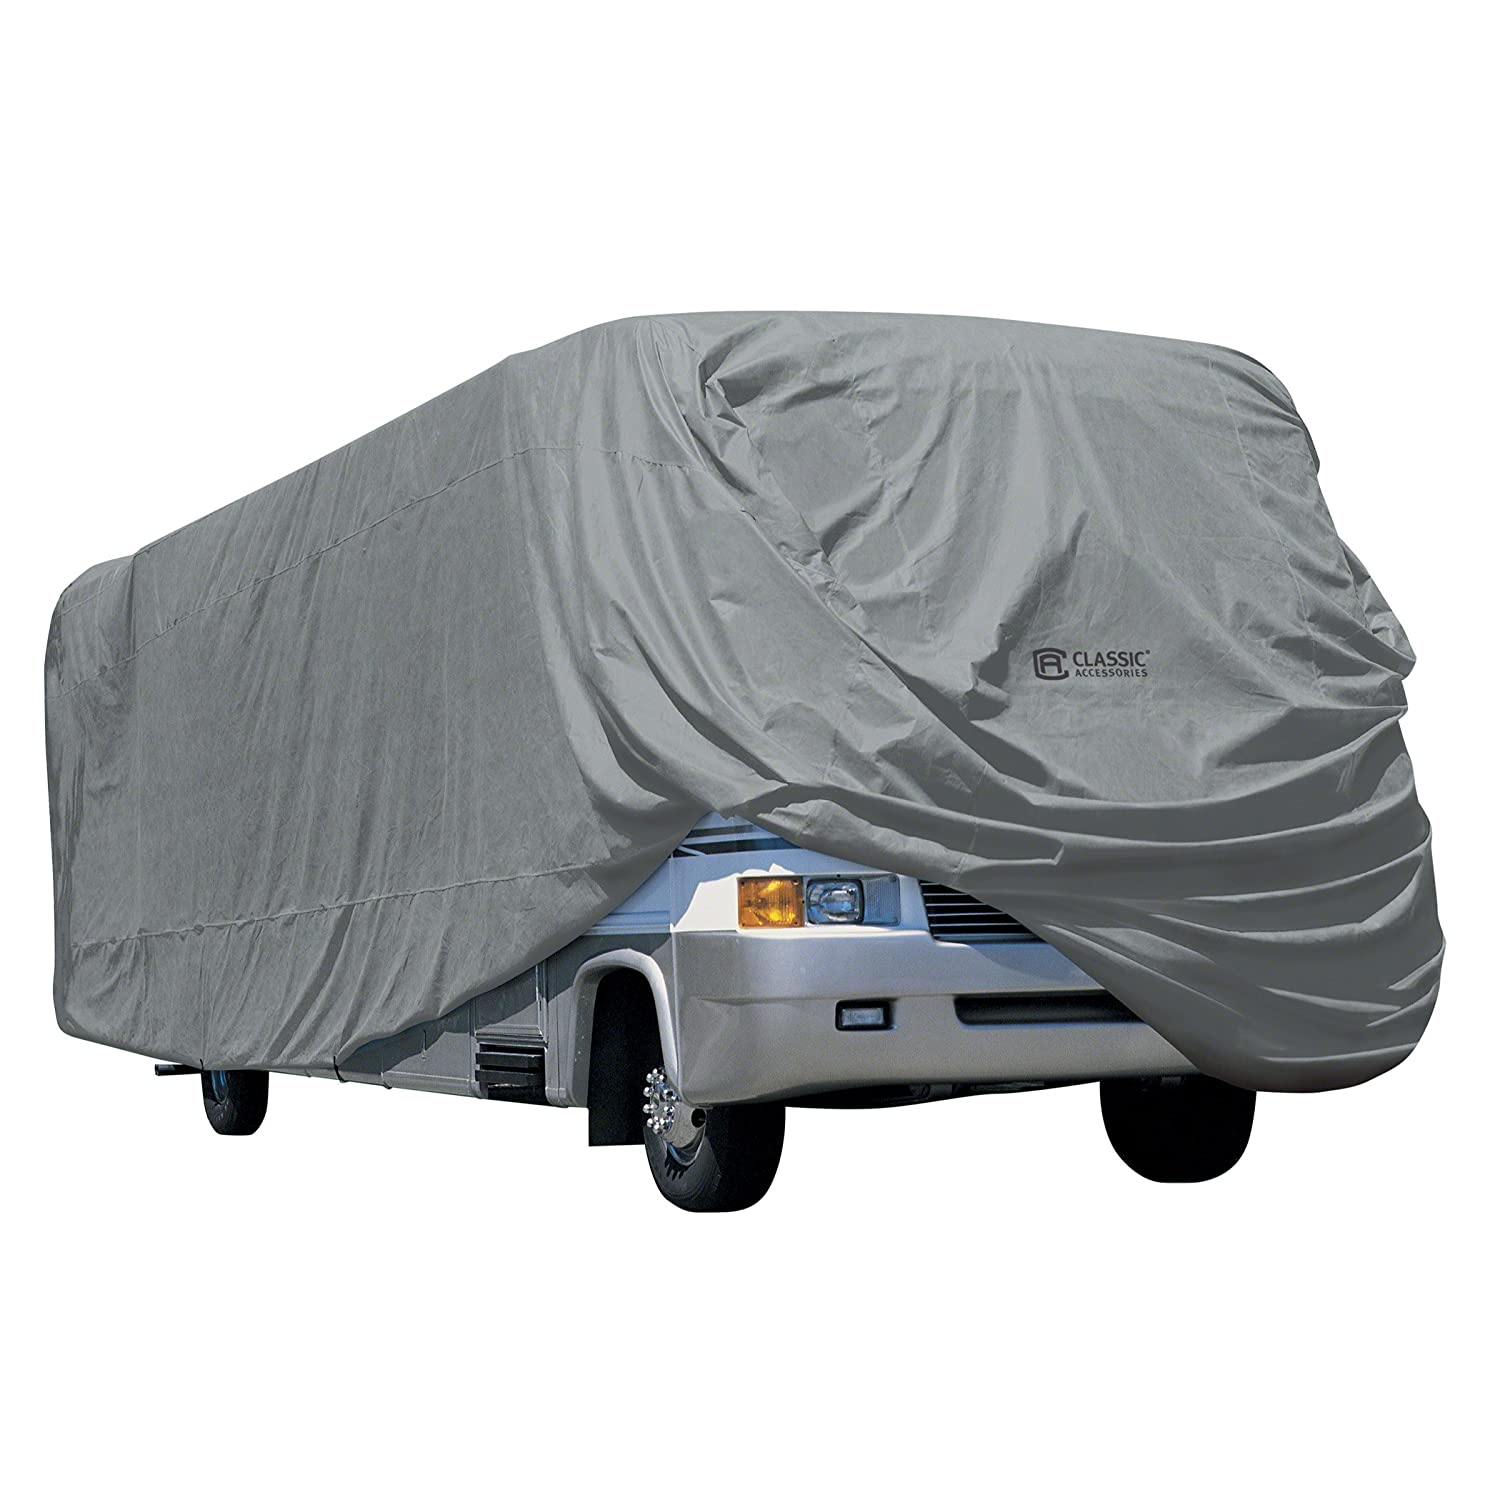 Classic Accessories OverDrive PolyPRO 1 Class A RV Cover, Fits 30' - 33' RVs - Breathable and Water Repellant RV Cover (80-163-181001-00) Fits 30' - 33' RVs - Breathable and Water Repellant RV Cover (80-163-181001-00)